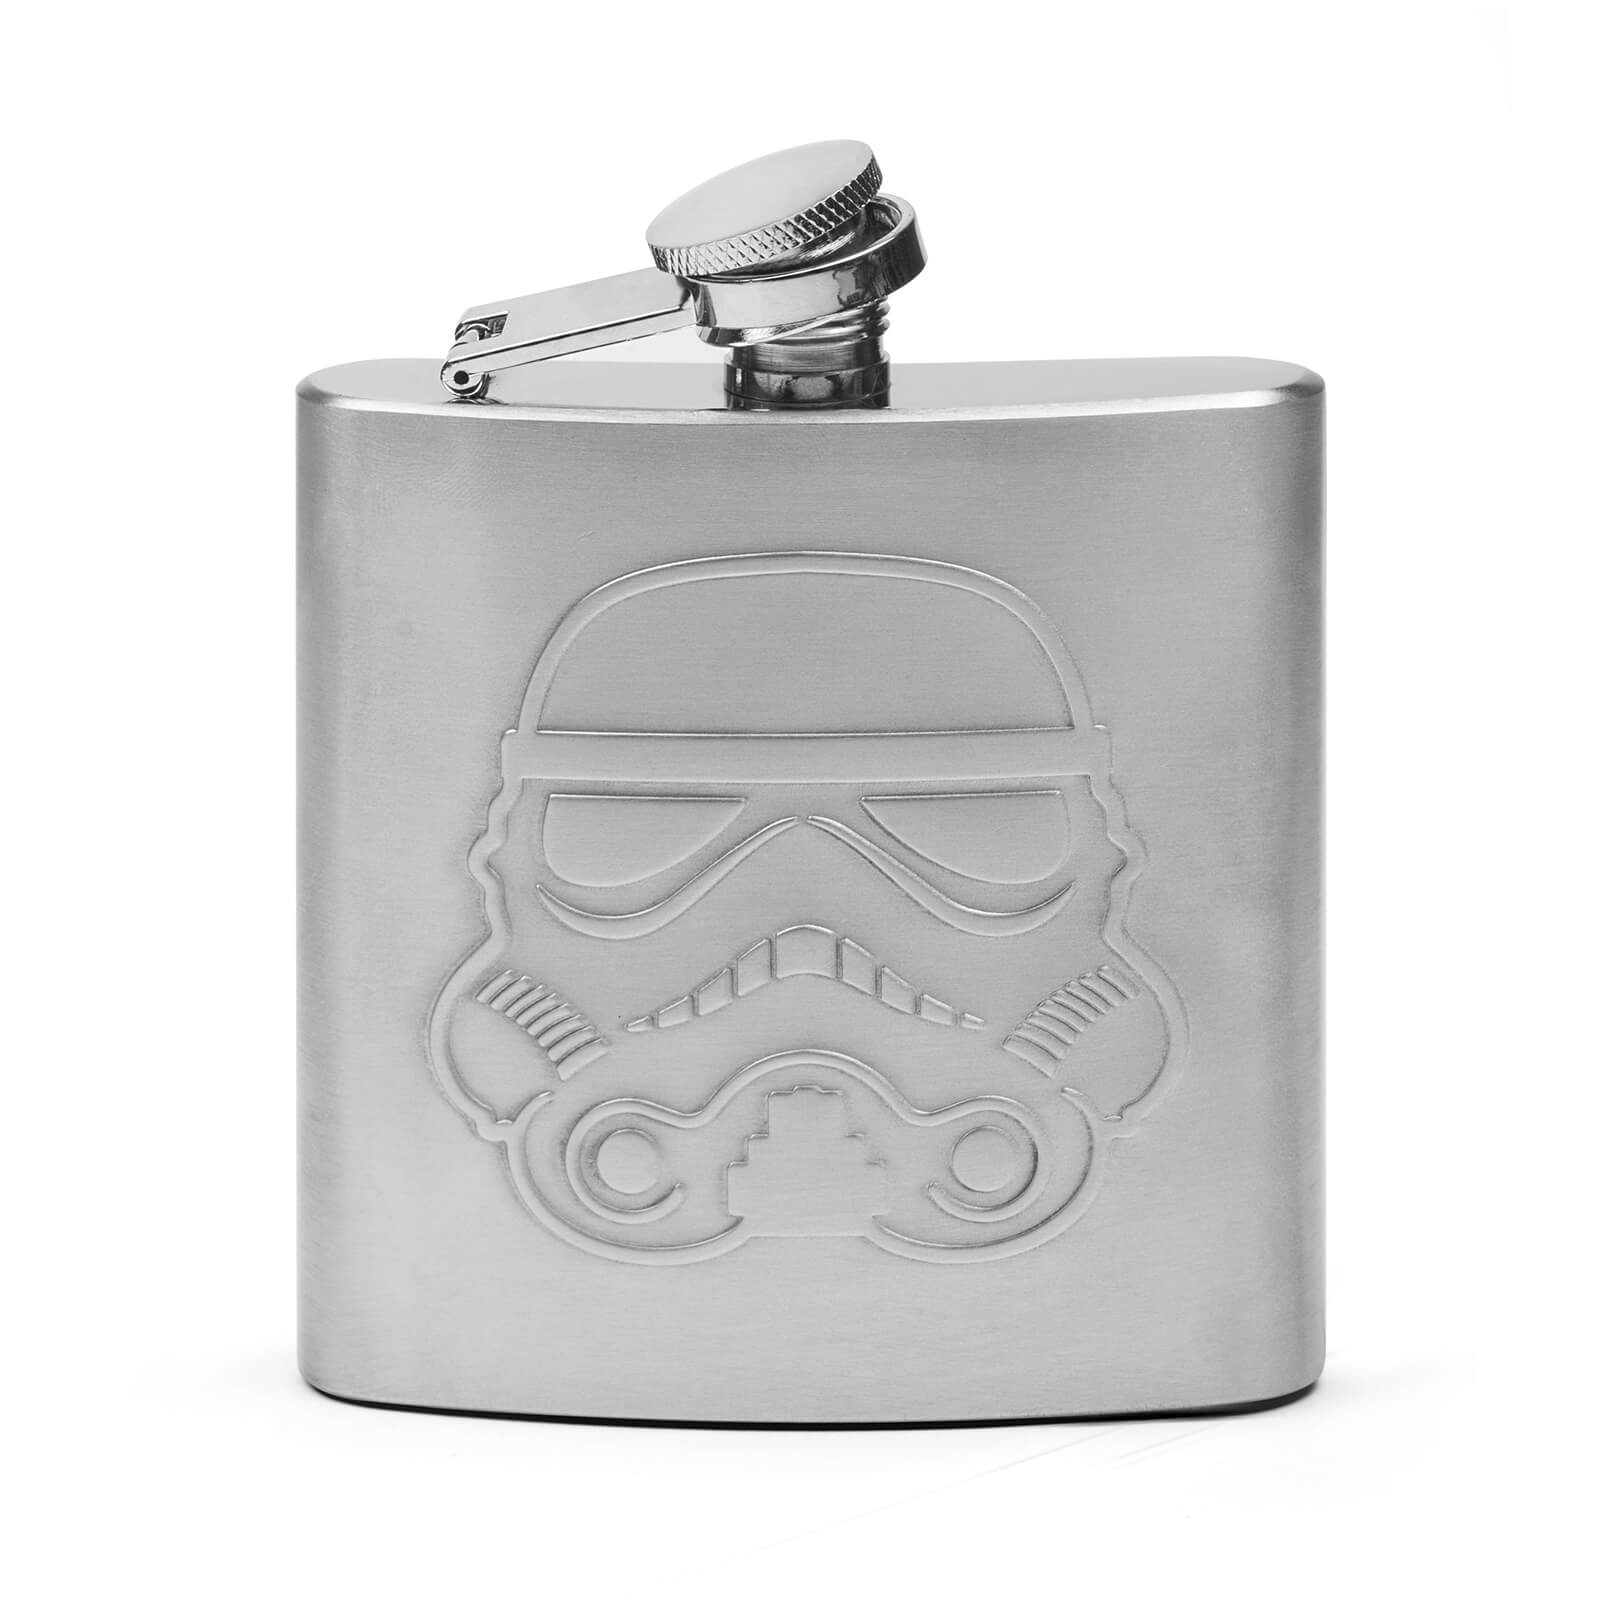 Star Wars Original Stormtrooper Hip Flask - Stainless Steel